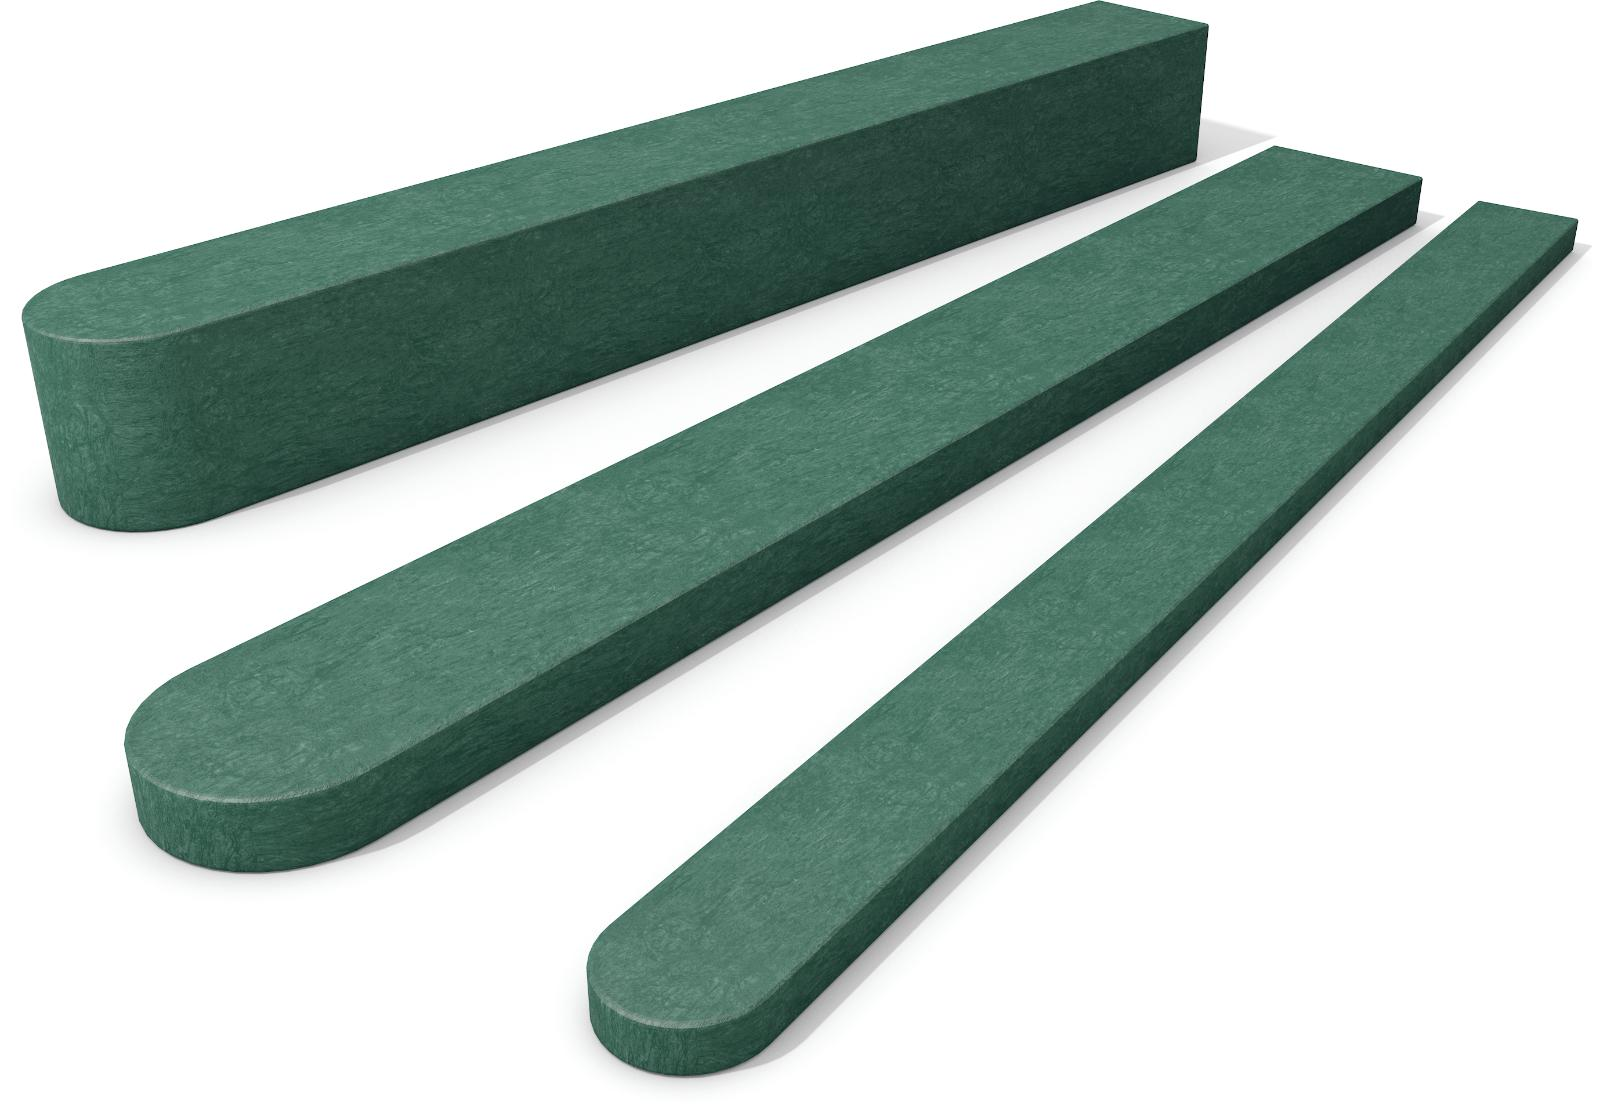 Fence Pale with Round End Green 30mm x 100mm x 800mm